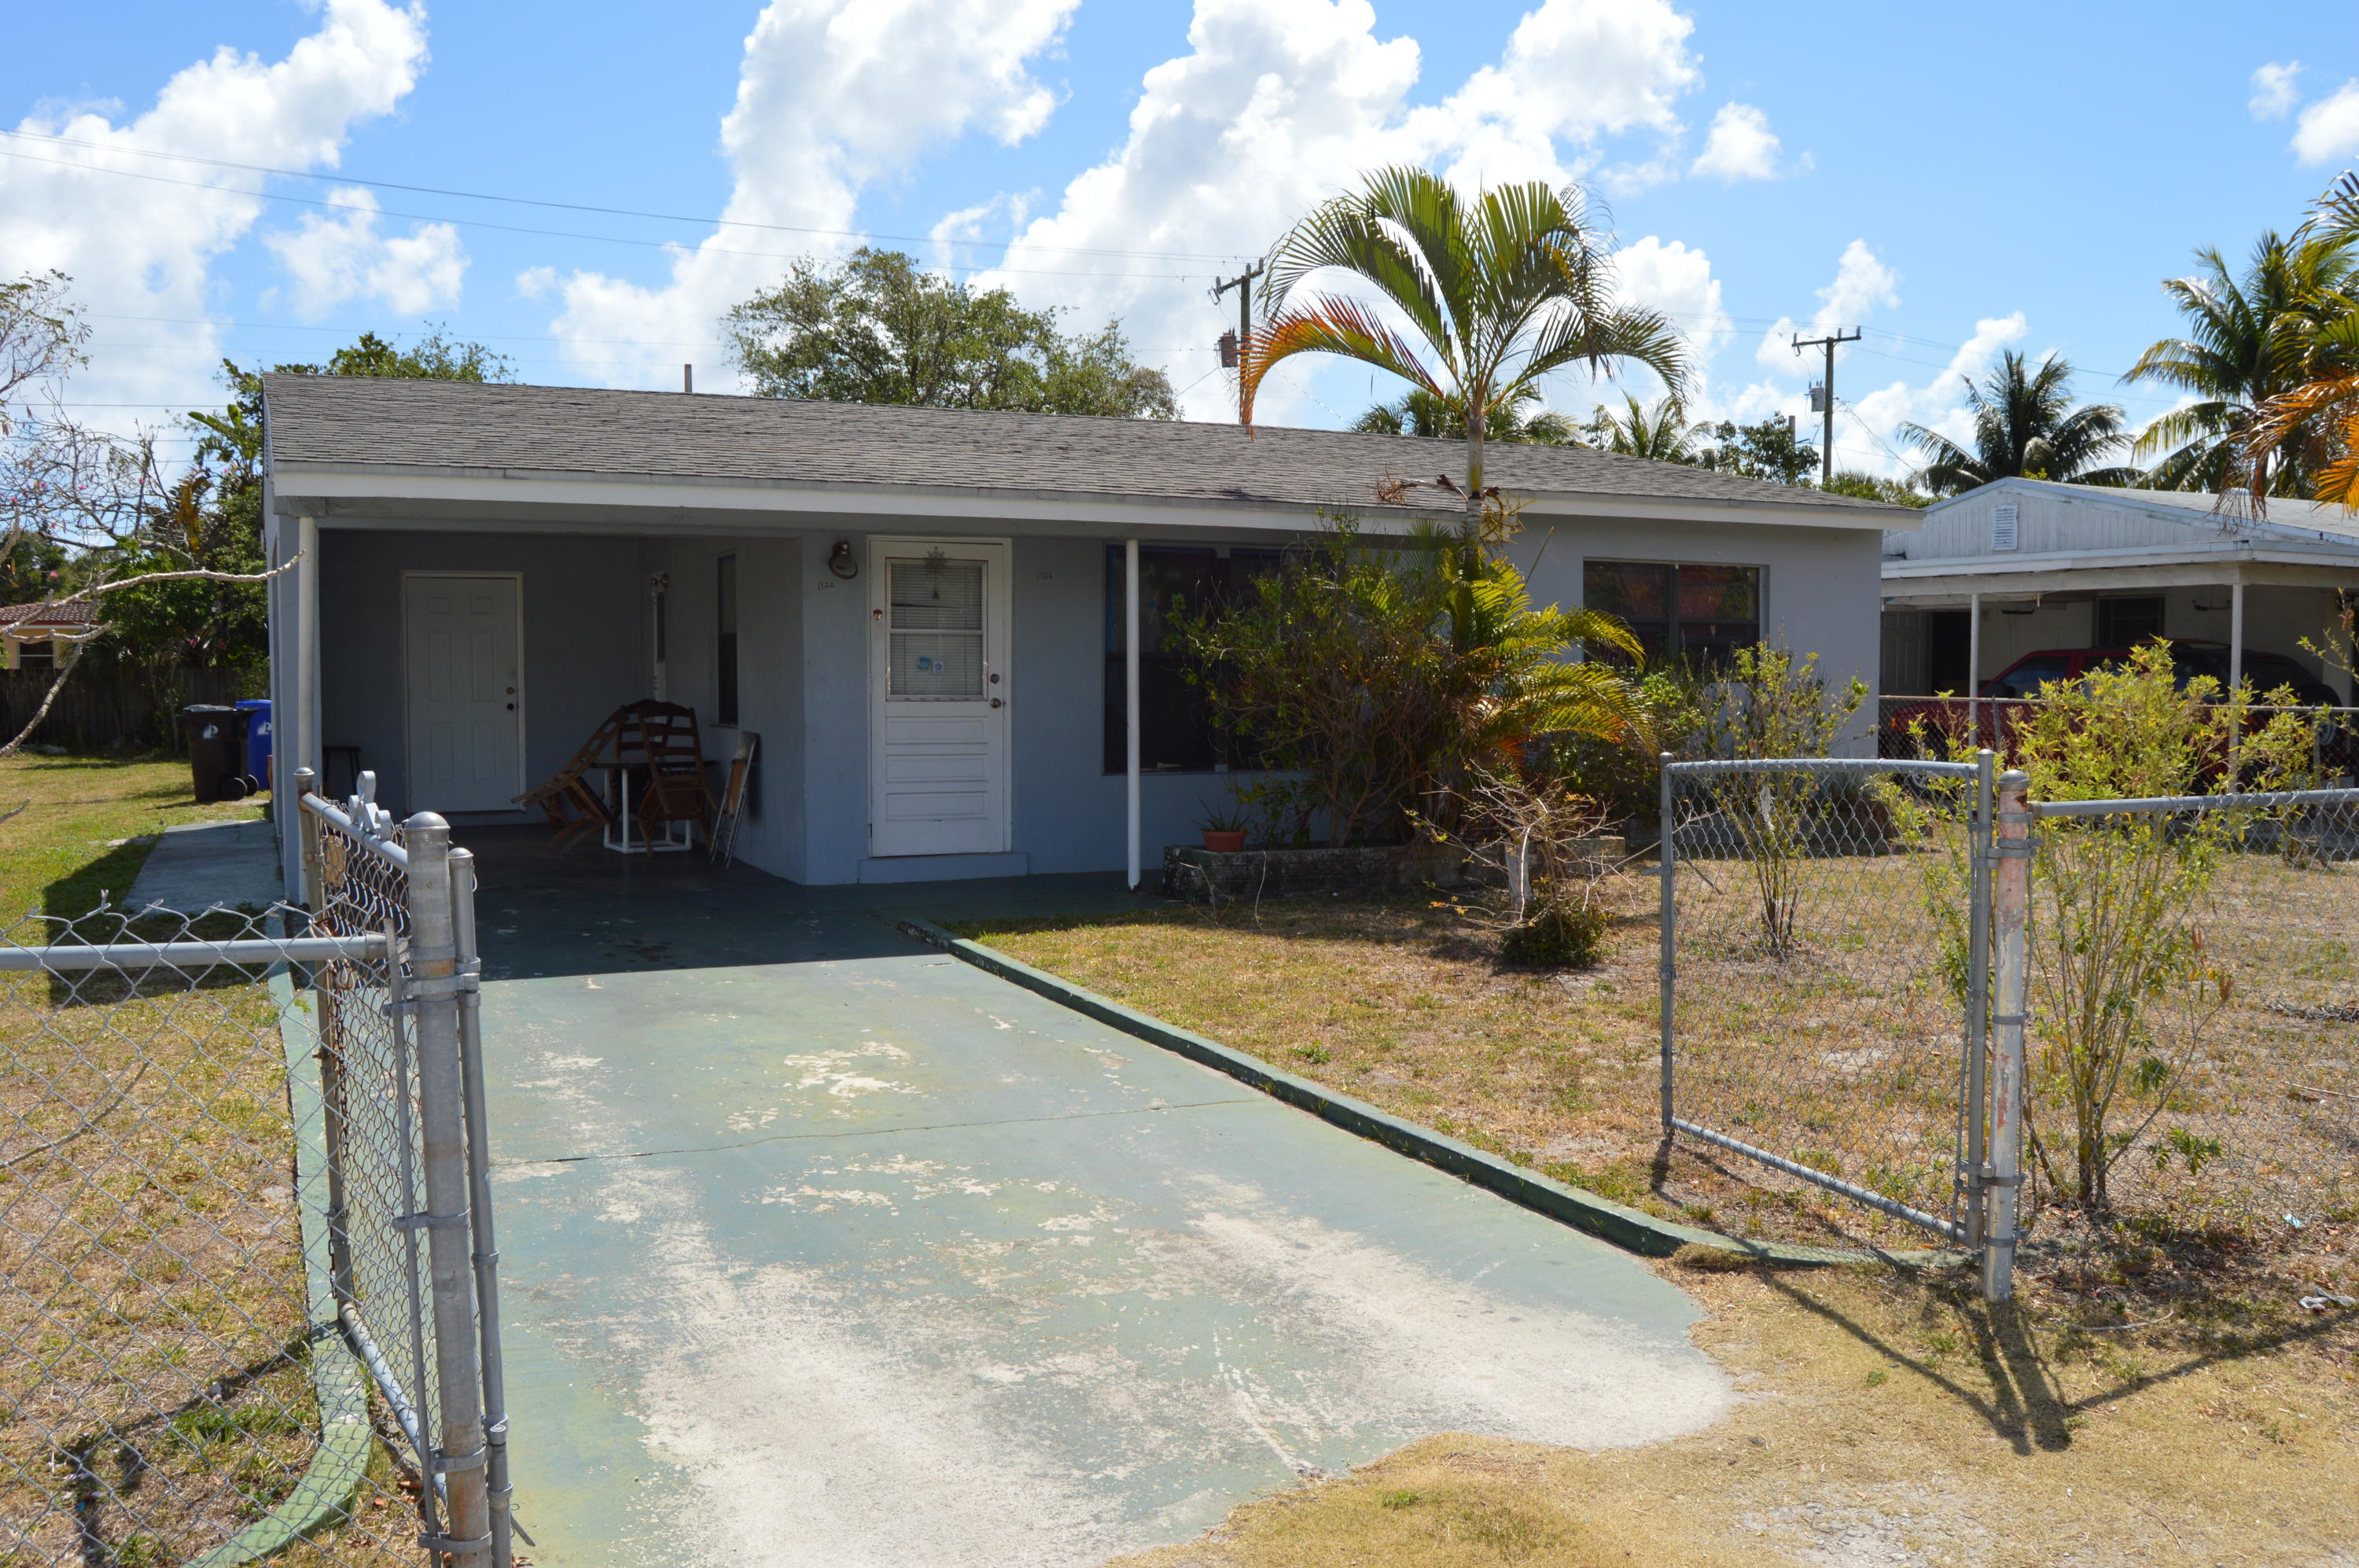 Progresso, 1126 NW 6th, Fort Lauderdale, Florida 33311